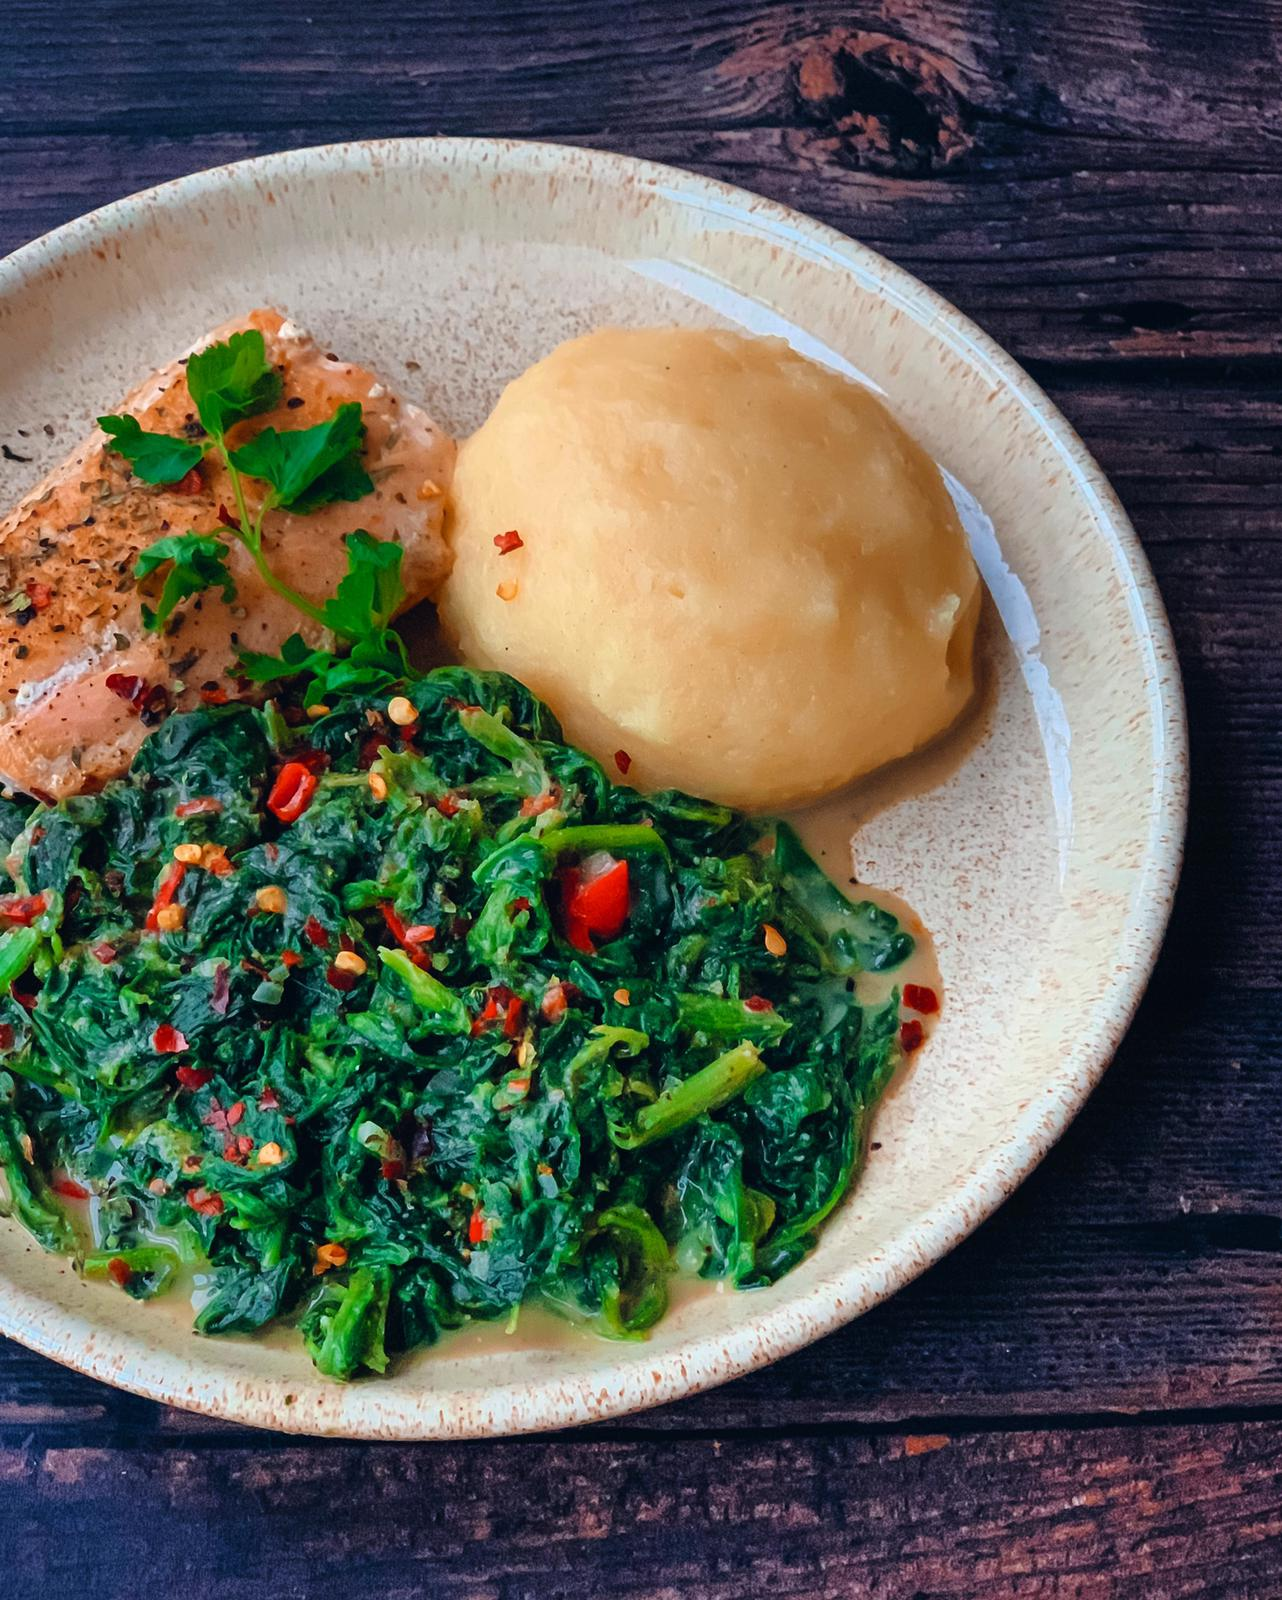 Groundnut, spinach, cornmeal